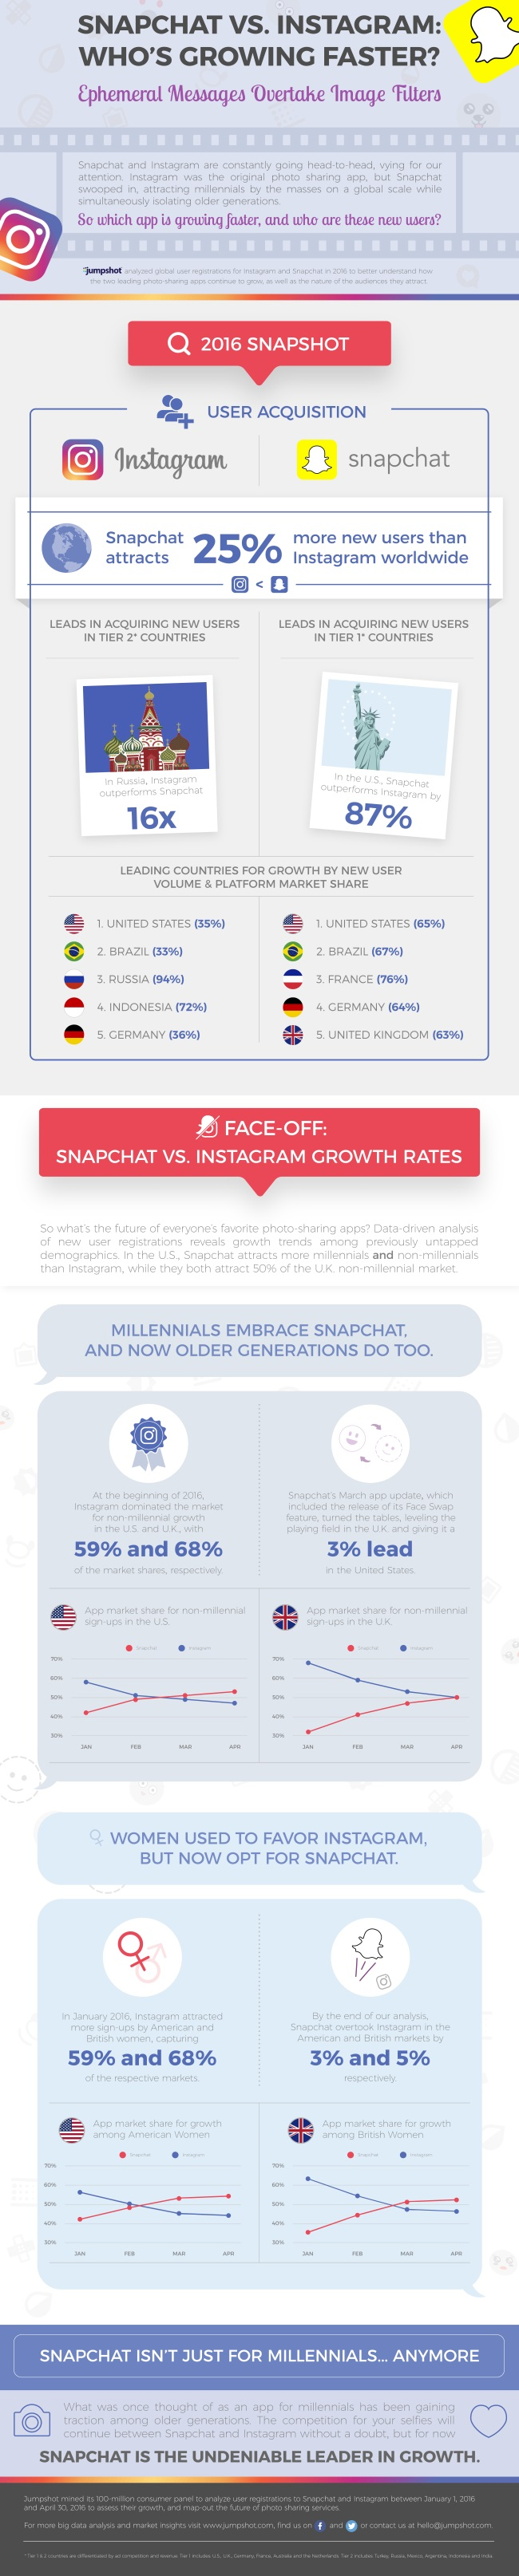 Snapchat vs Instagram: Who's Growing Faster [Infographic] | Social Media Today